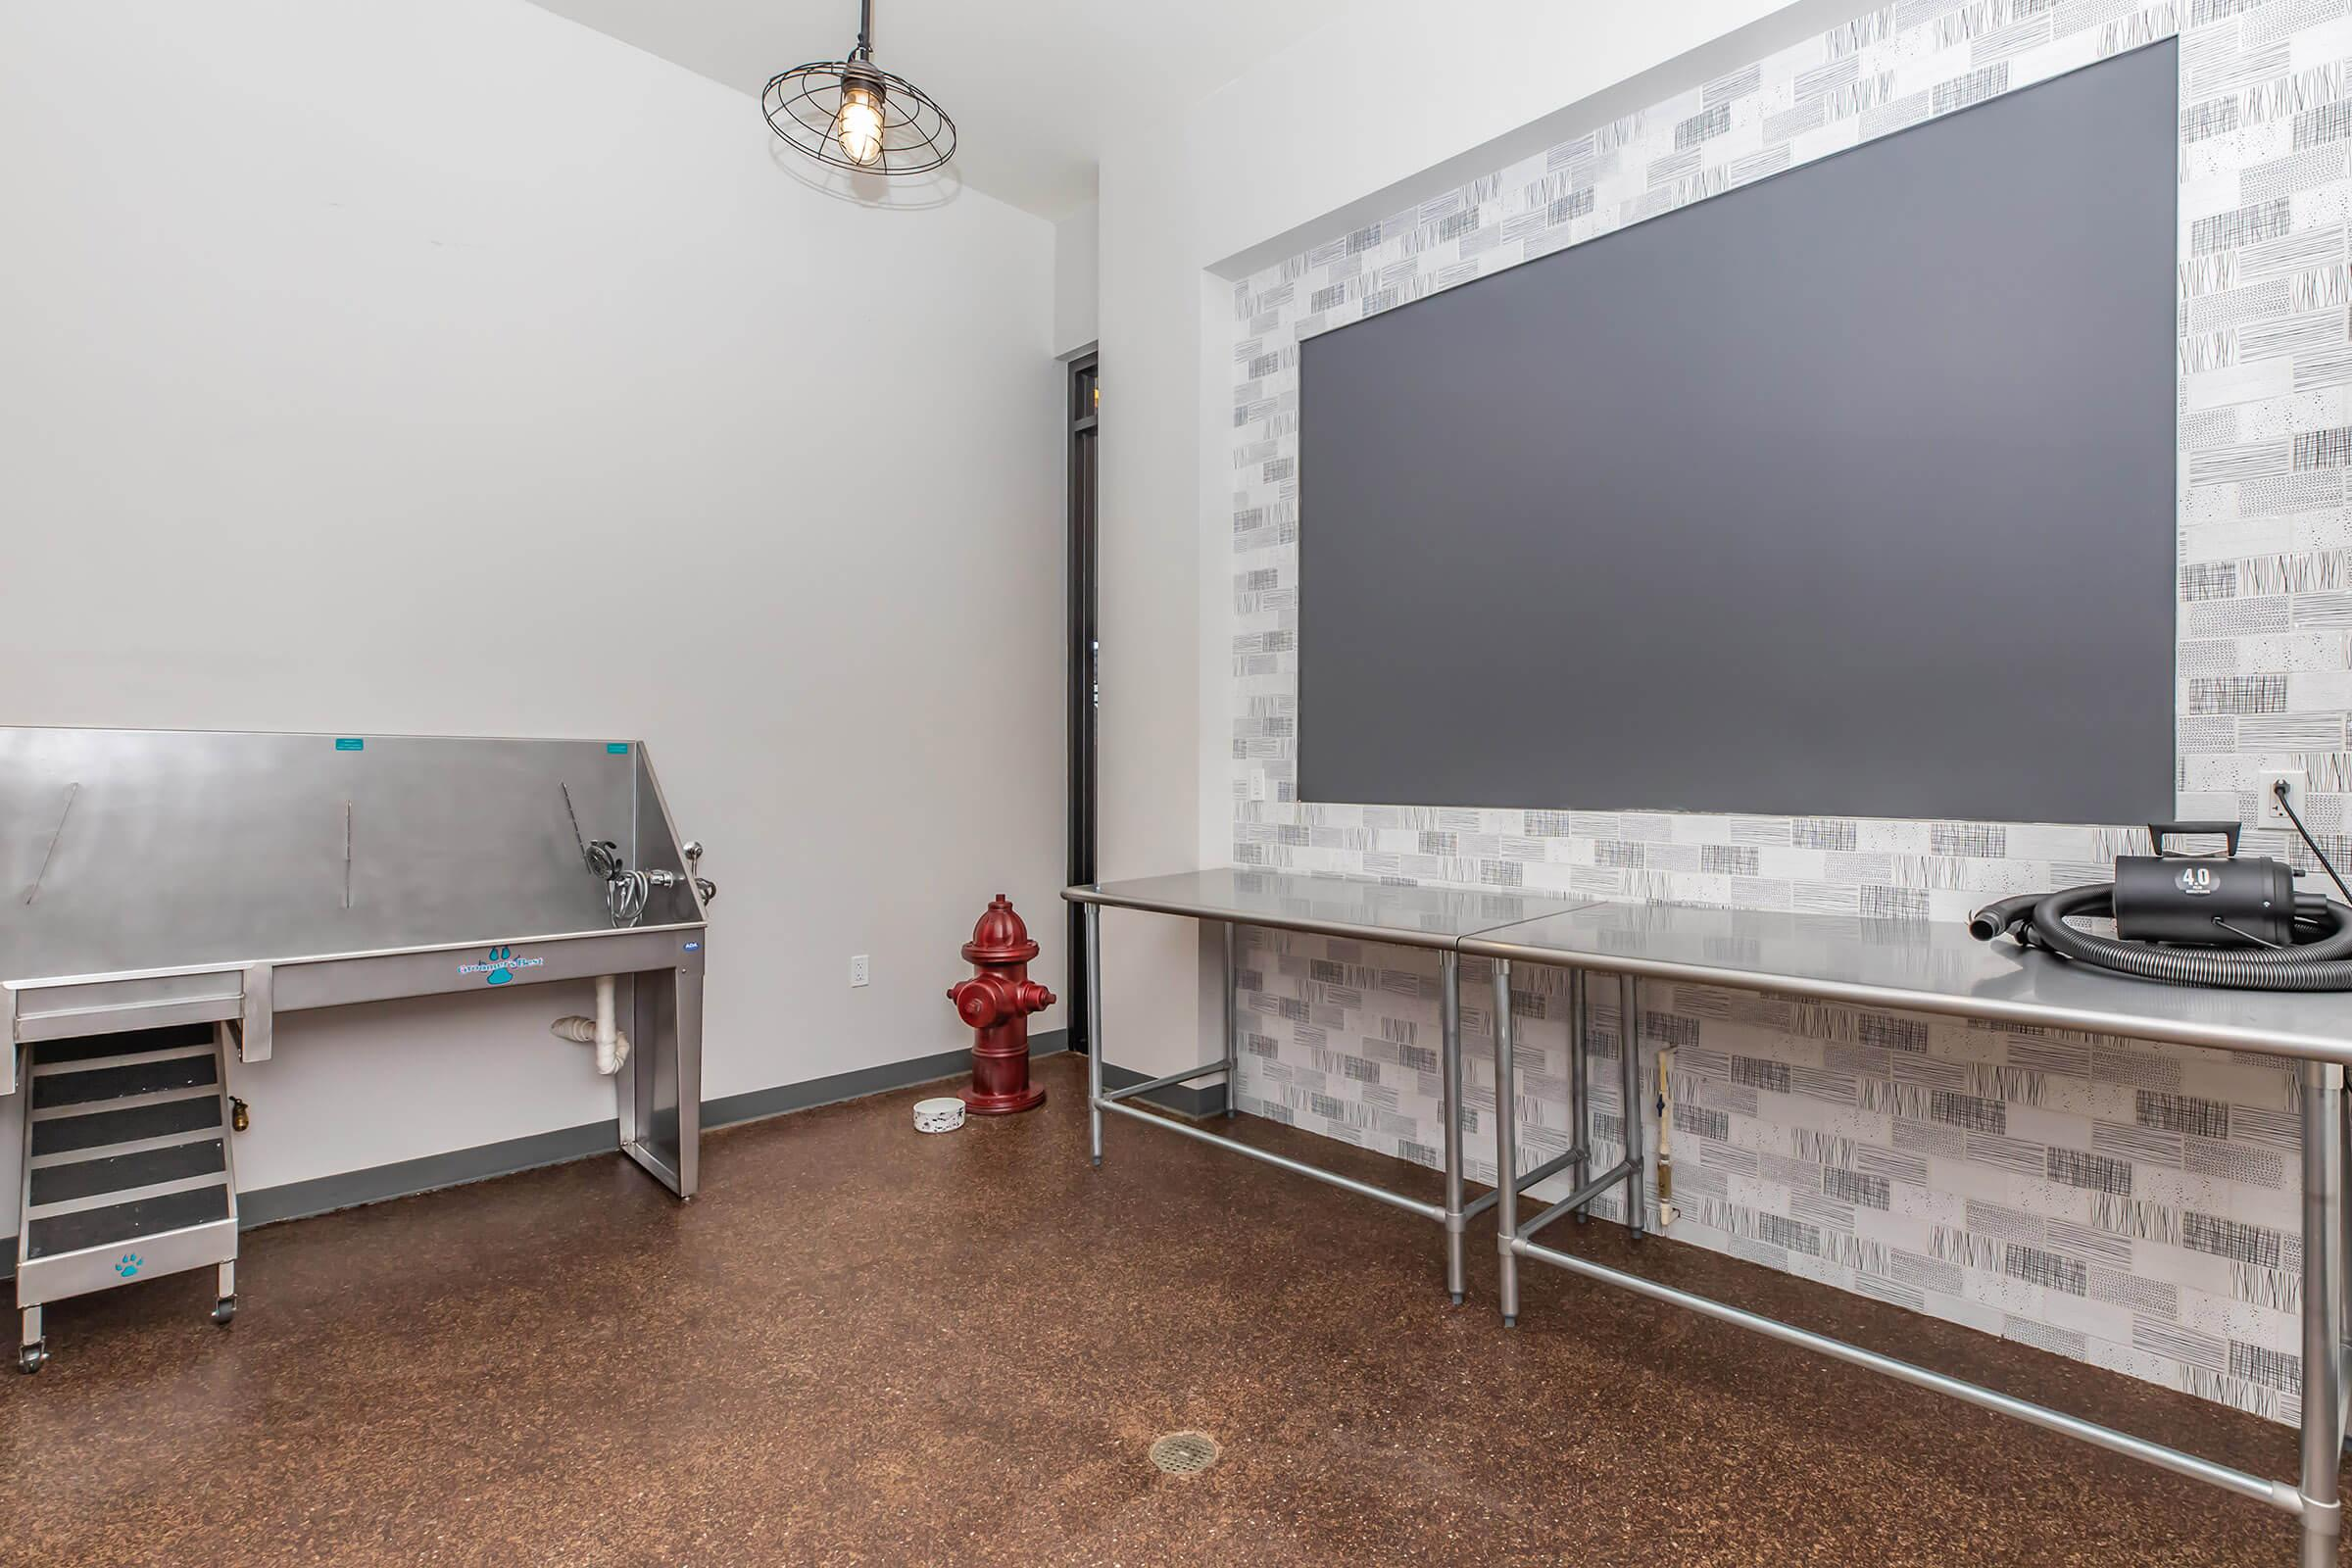 a large flat screen tv sitting in a room